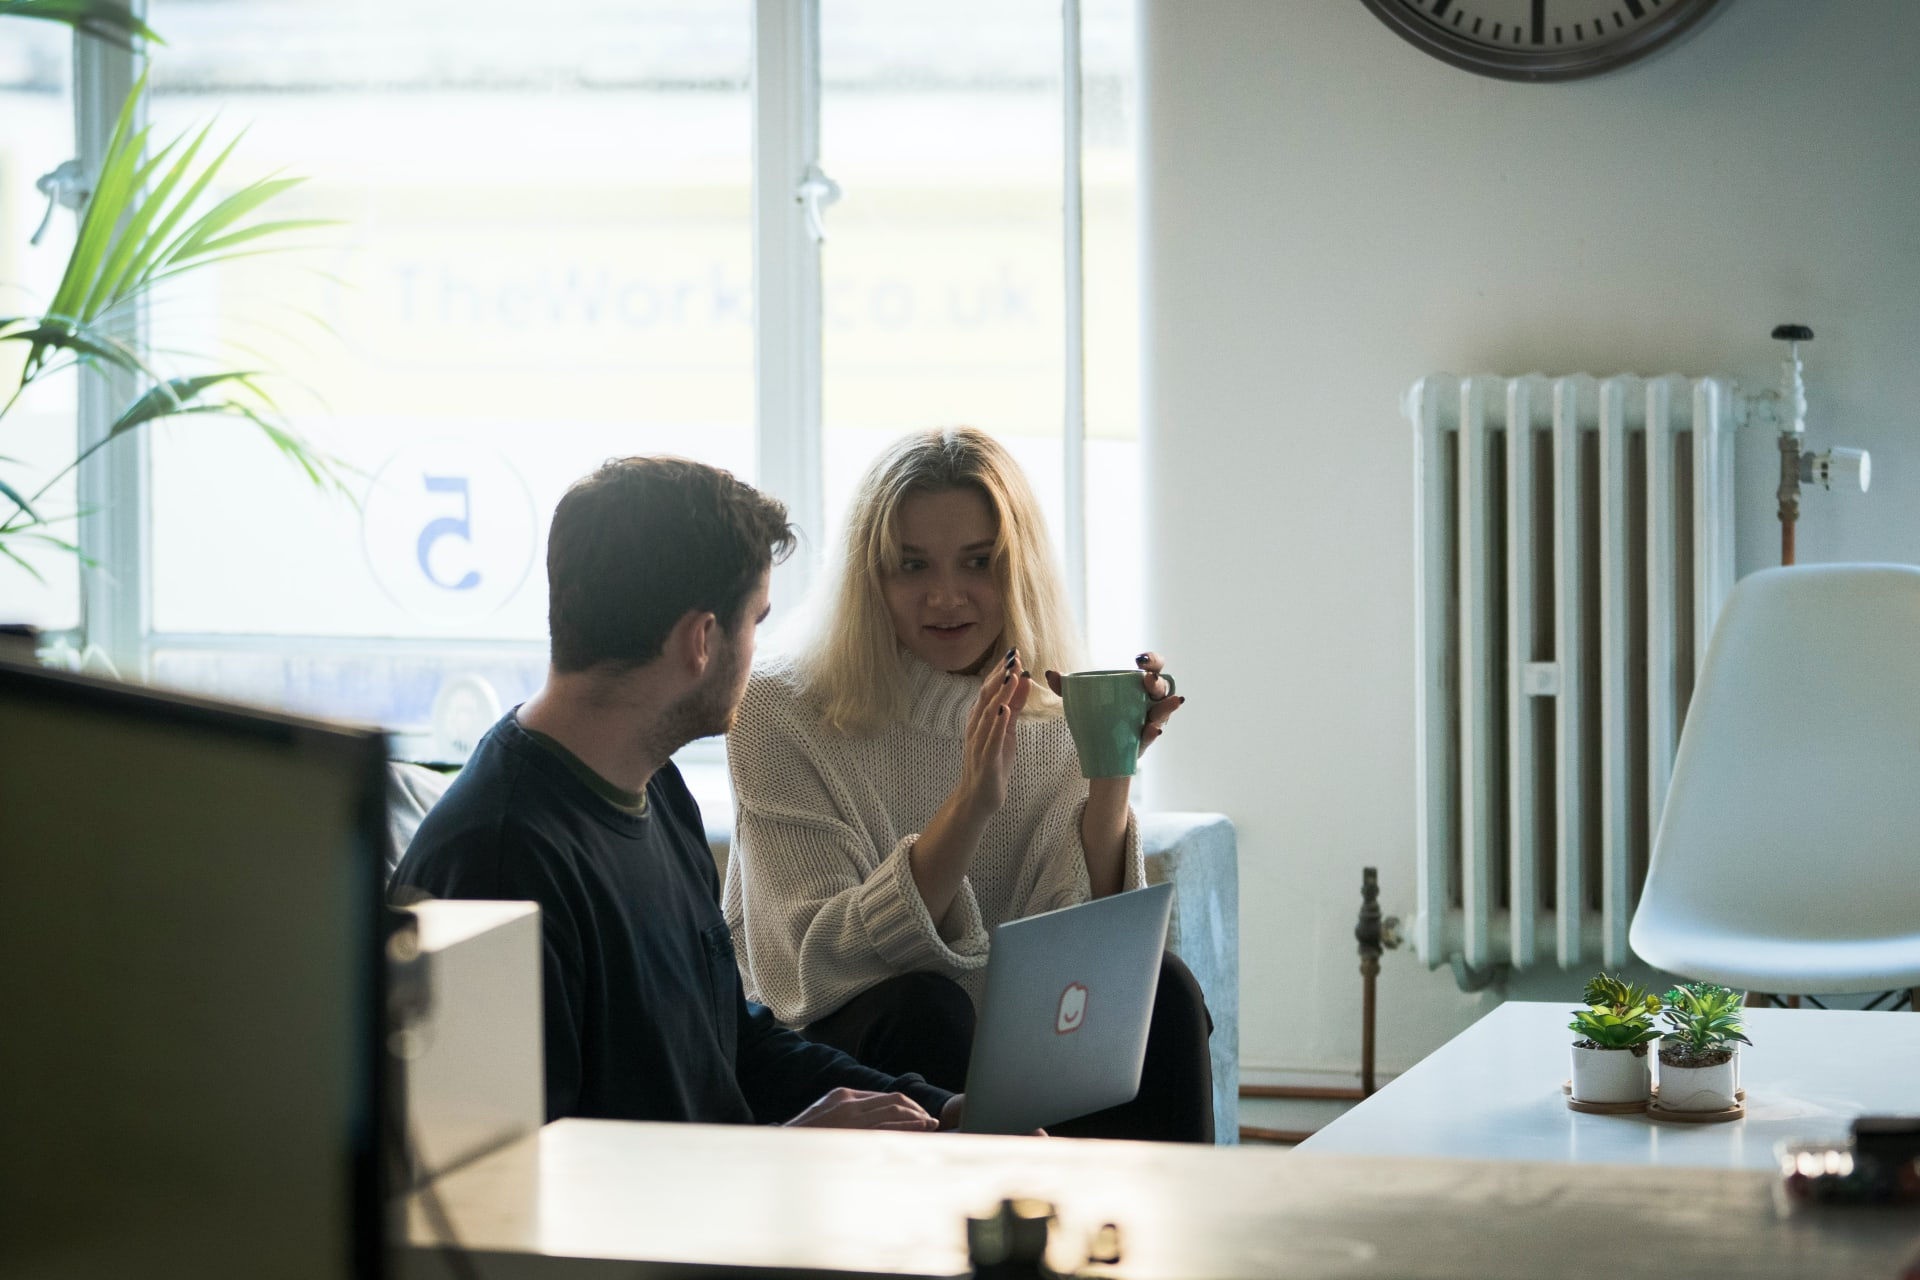 Man and woman in conversation in an office